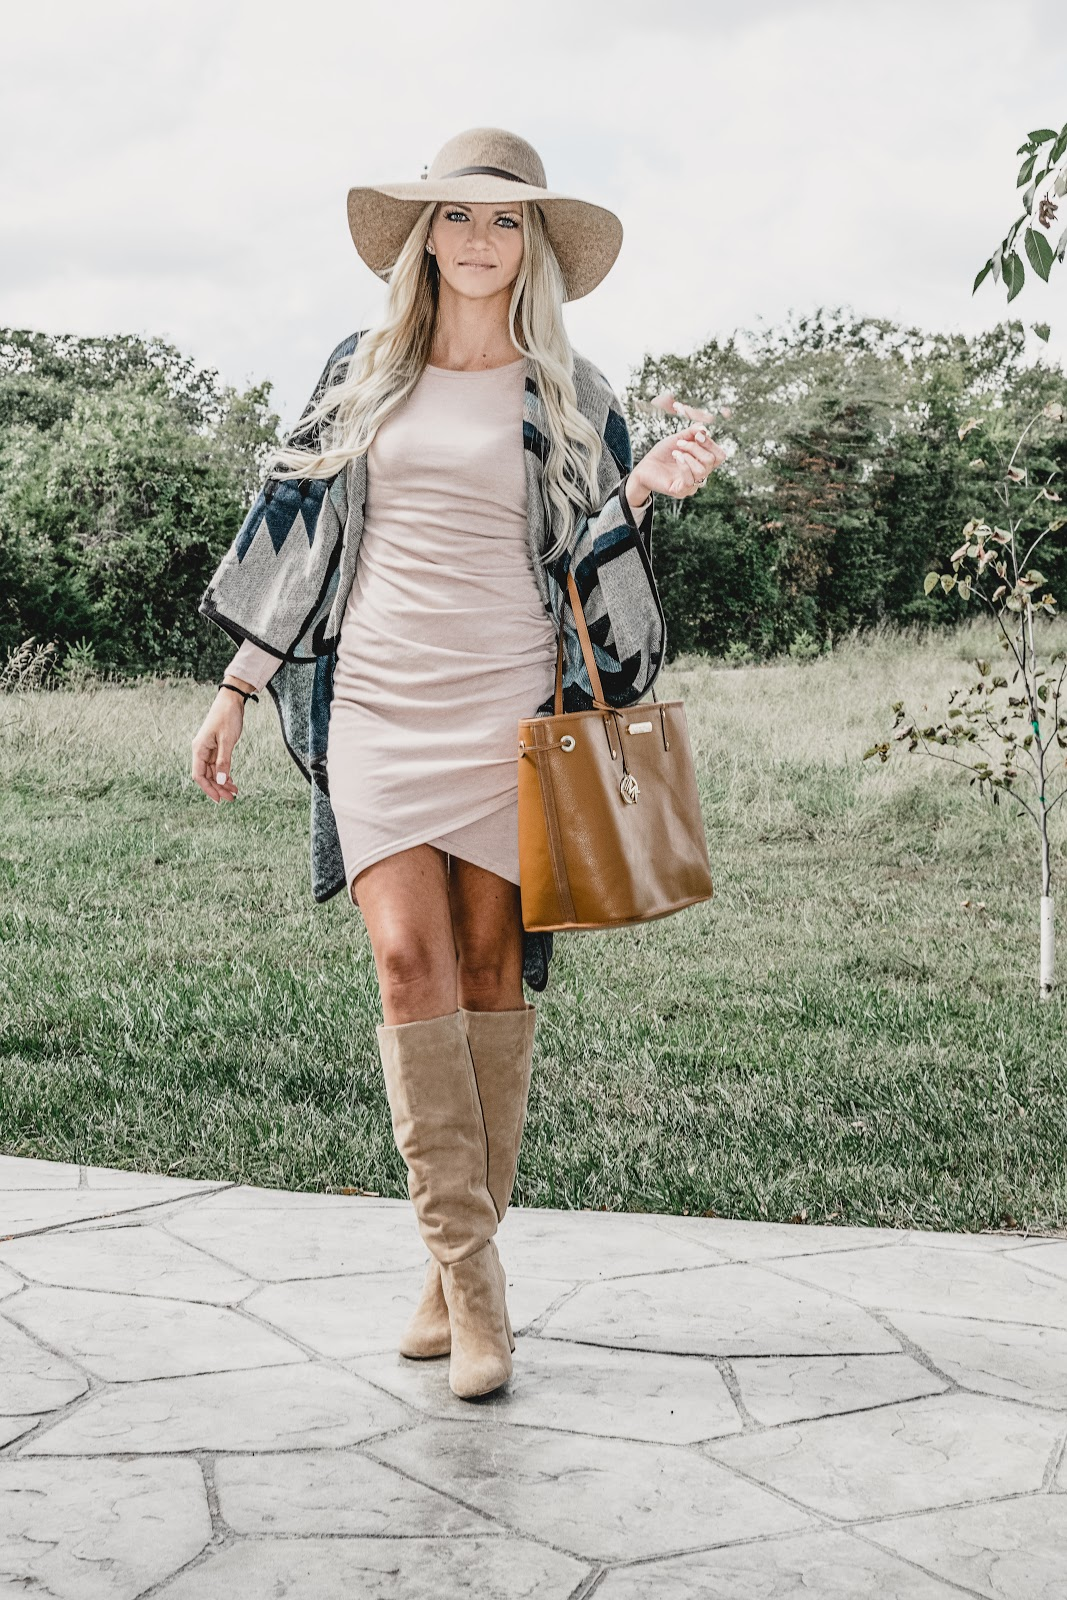 fall fashion outfit idea dress pumpkin patch long sleeve hat felt floppy boots blonde mom and me mommy family autumn poncho leith sneakers